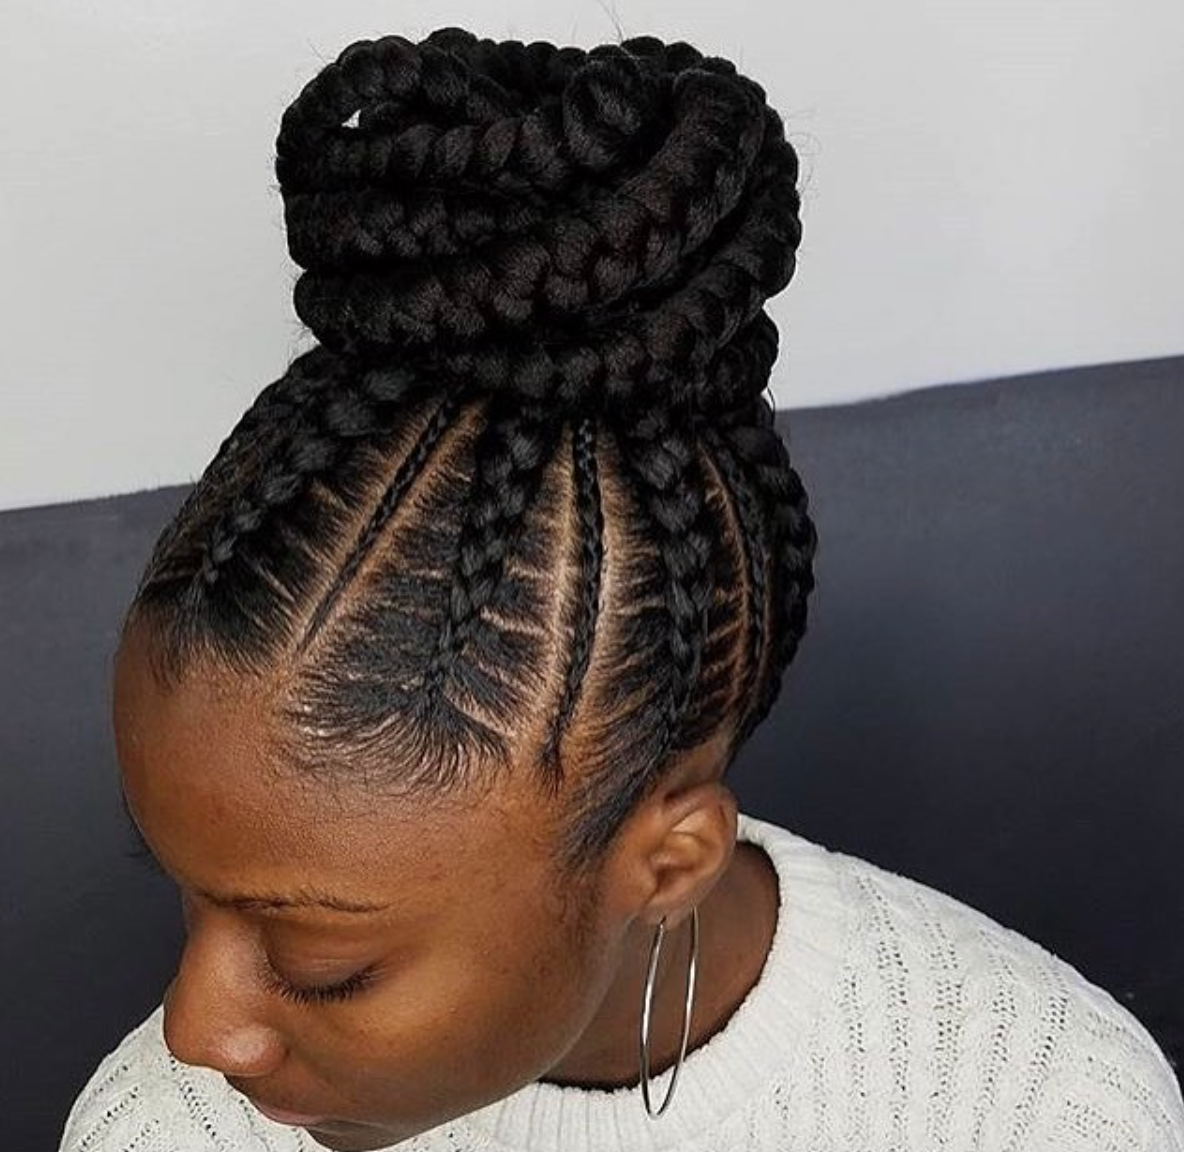 Flawless Braided Bun By Narahairbraiding Http Blackhairinformation Com Hairstyle Gallery Flawless Braid Natural Hair Styles Hair Styles Braided Hairstyles